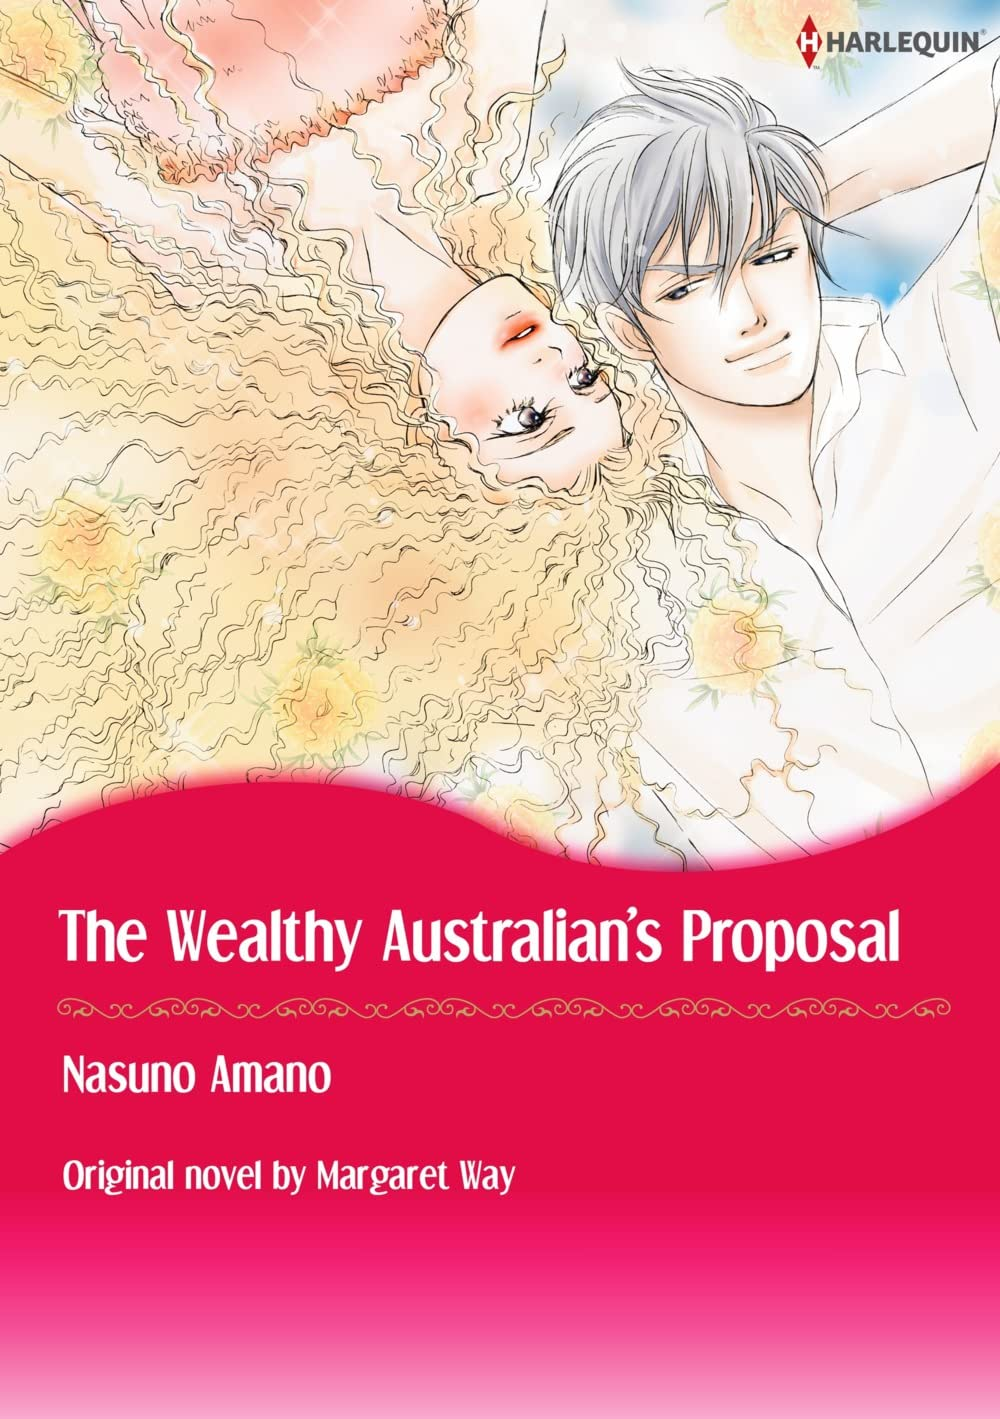 The Wealthy Australian's Proposal